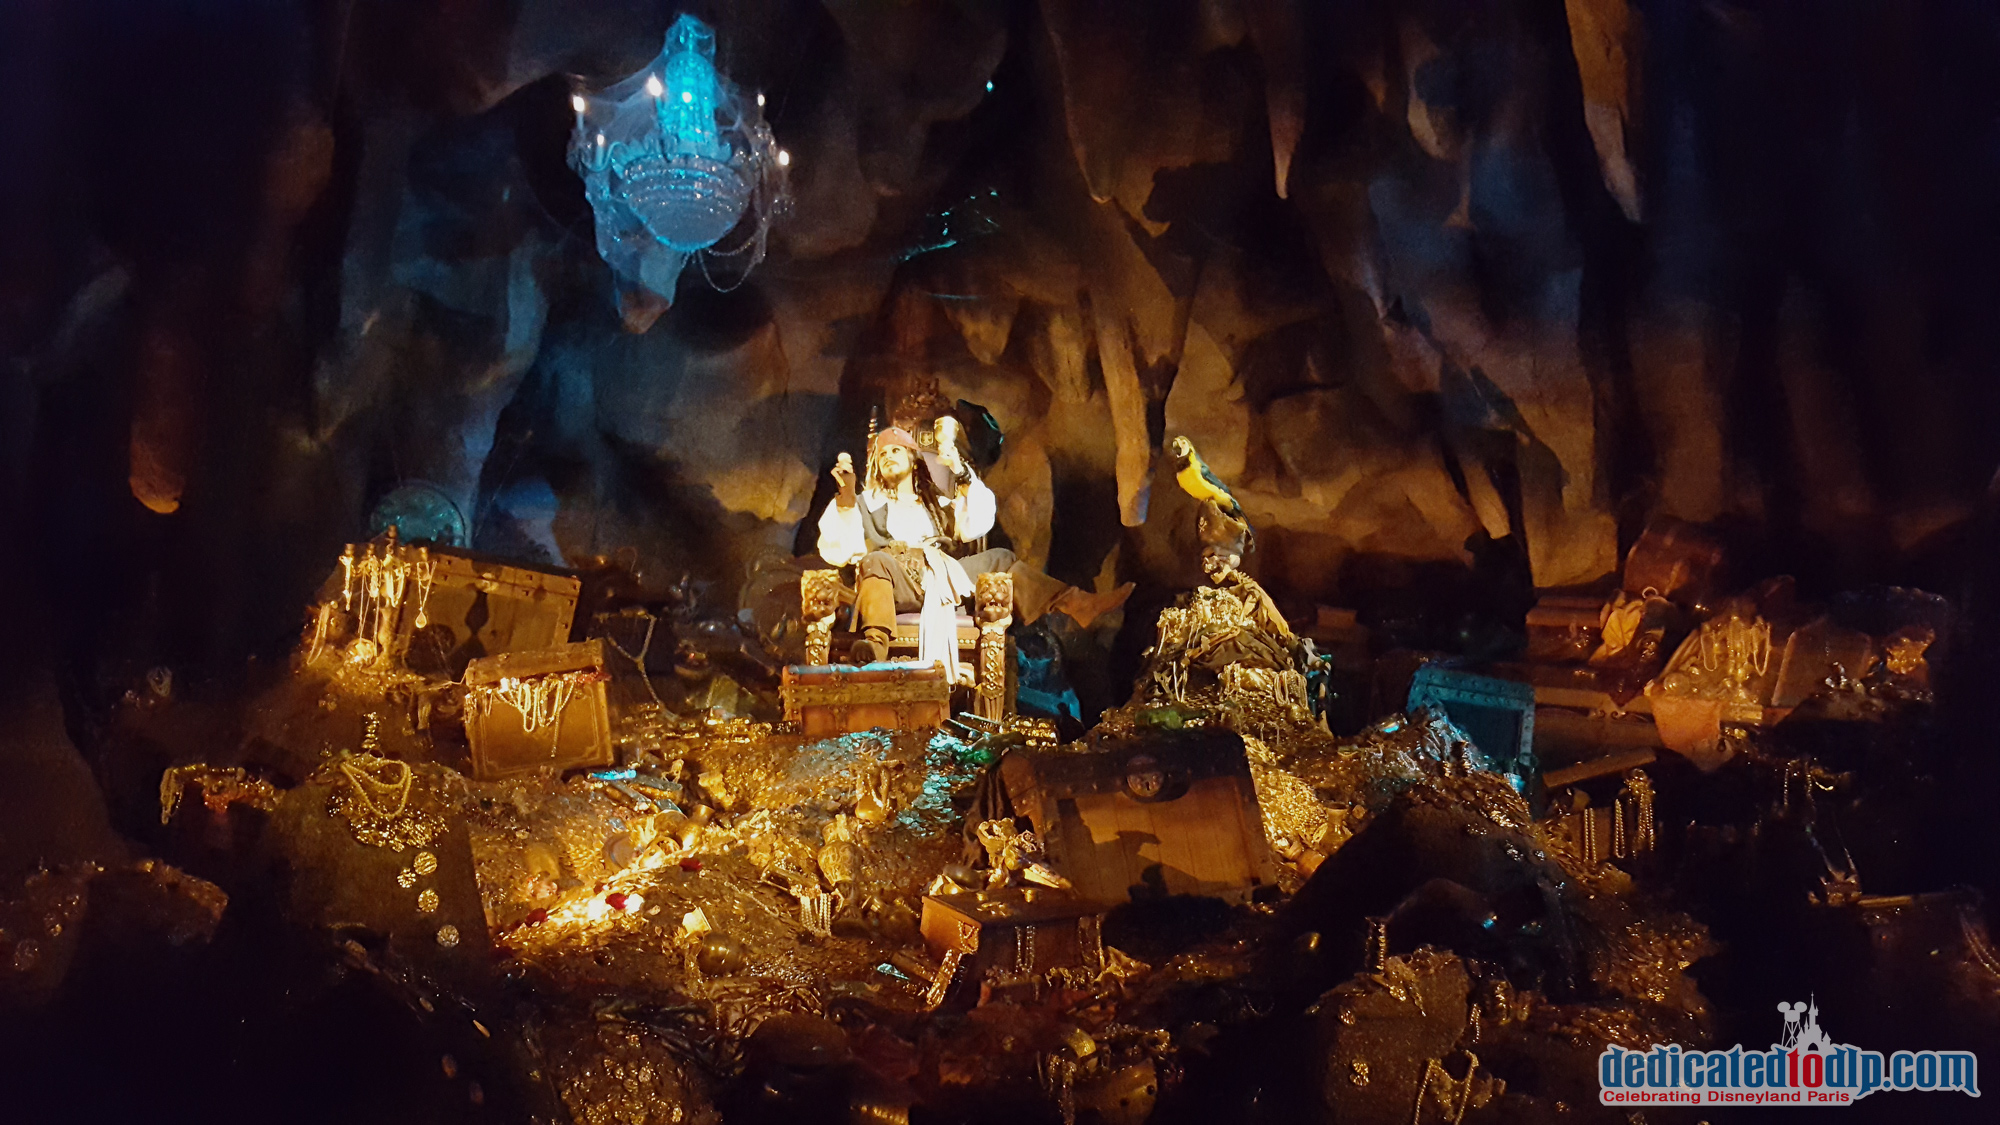 Captain Jack in Pirates of the Caribbean in Disneyland Paris